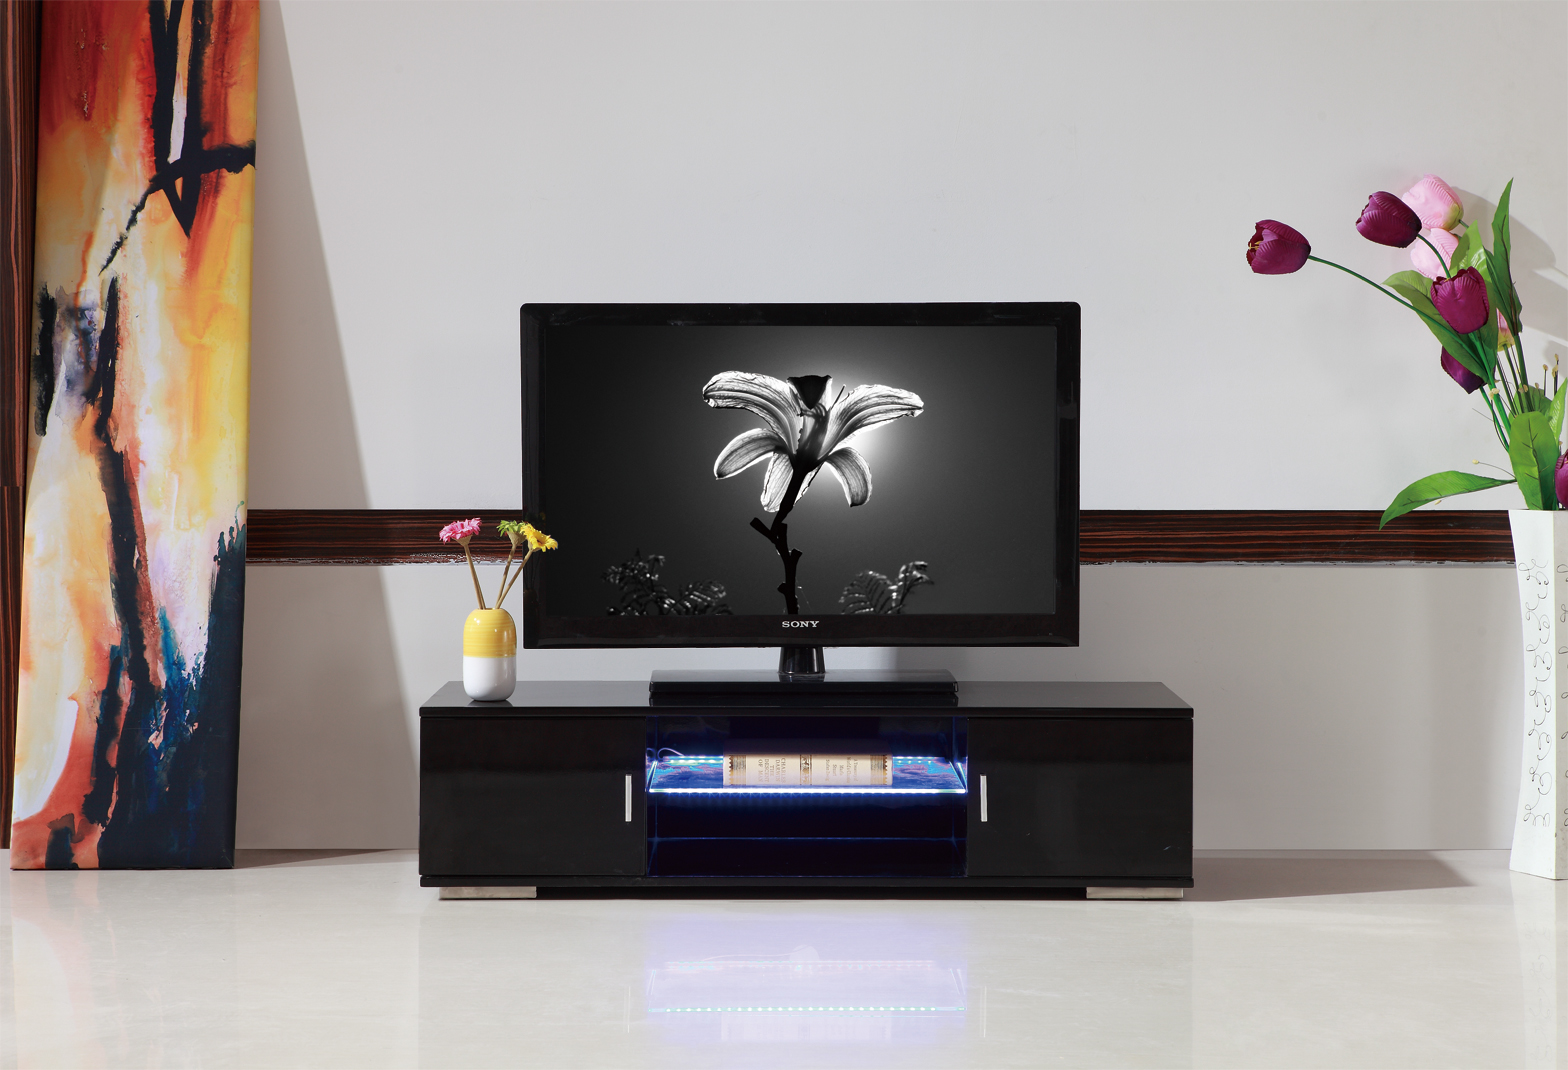 Led Tv Table Home Design Ideas And Pictures # Table Televiseur